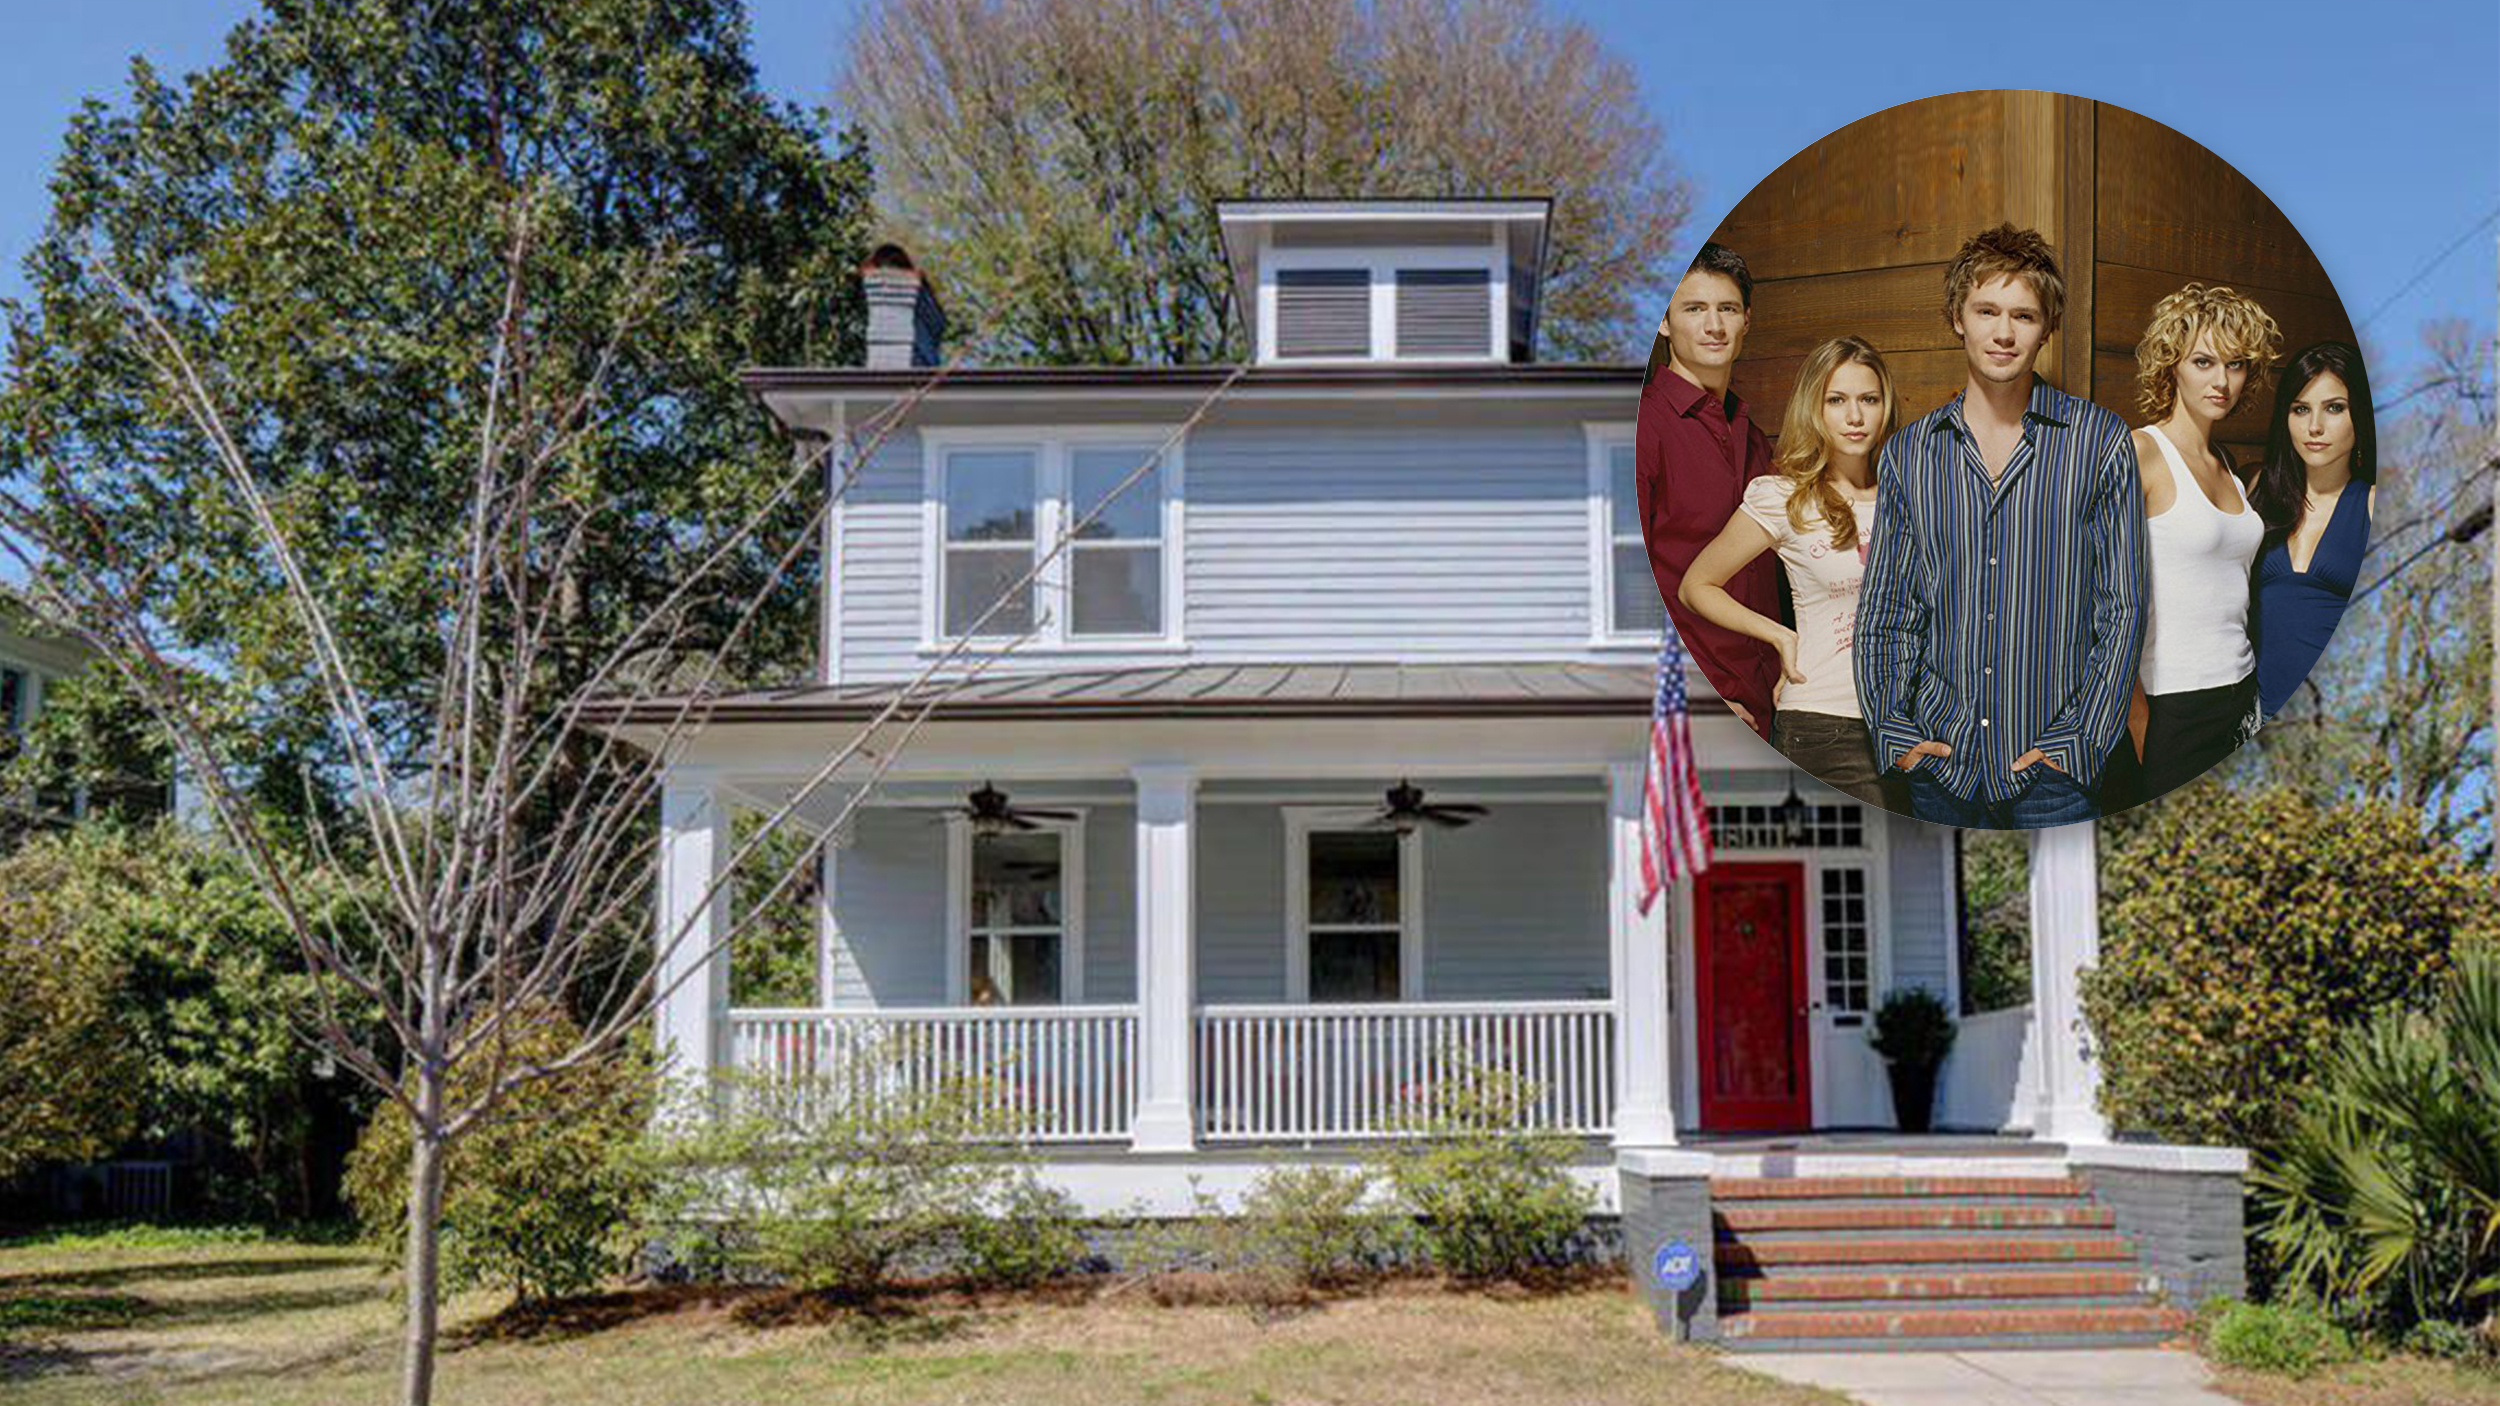 One Tree Hill  house is for sale in Wilmington  North Carolina  One Tree Hill  house is for sale in Wilmington  North Carolina